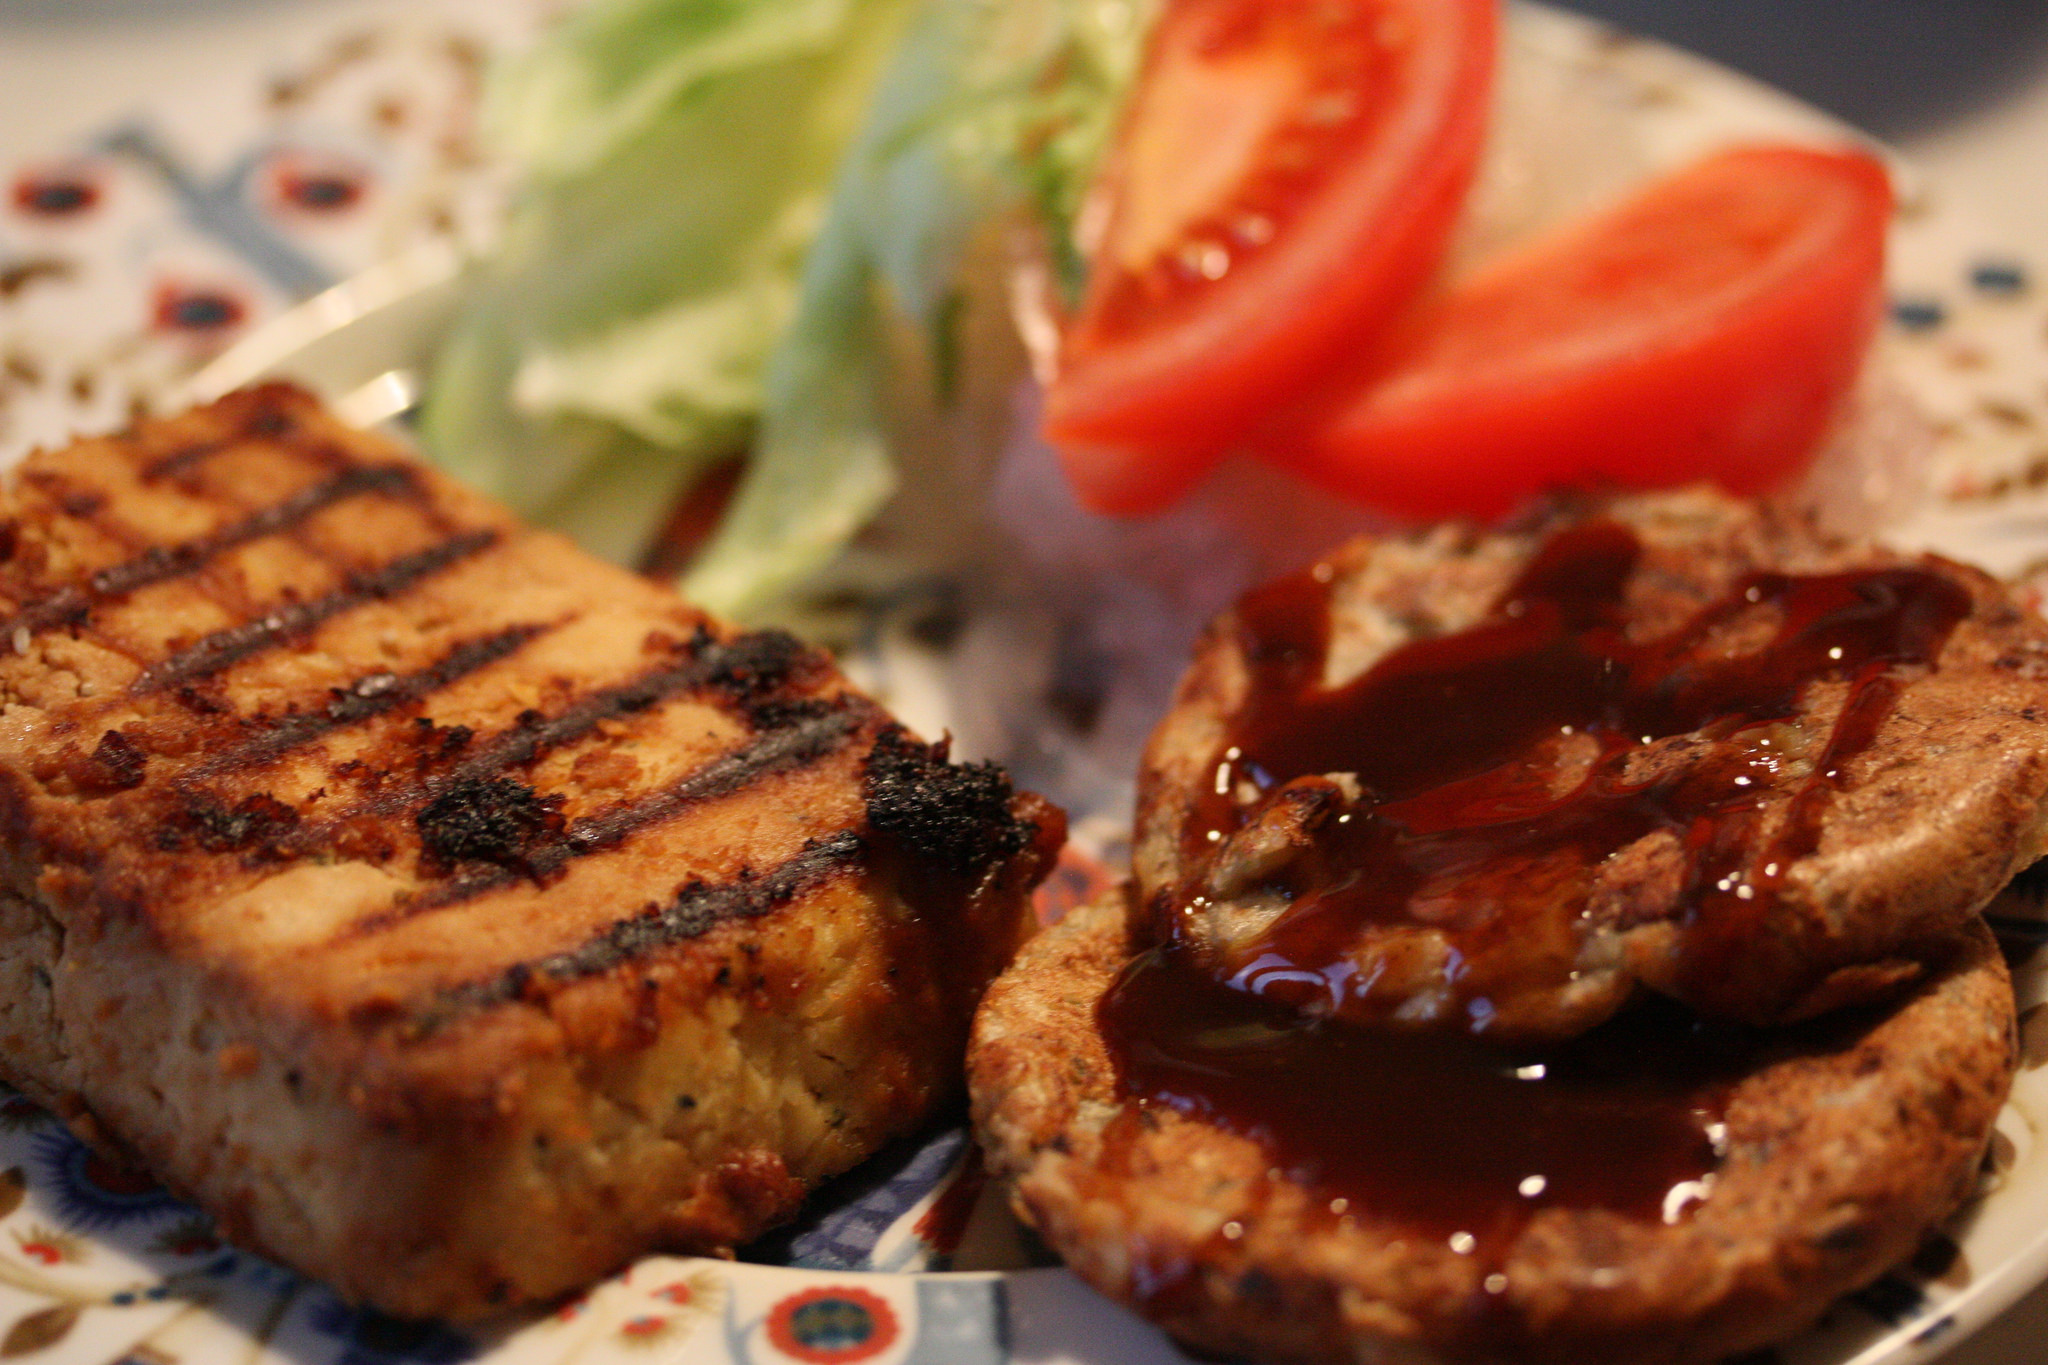 Tofu steak with miso marinade and miniature okonomiyaki.